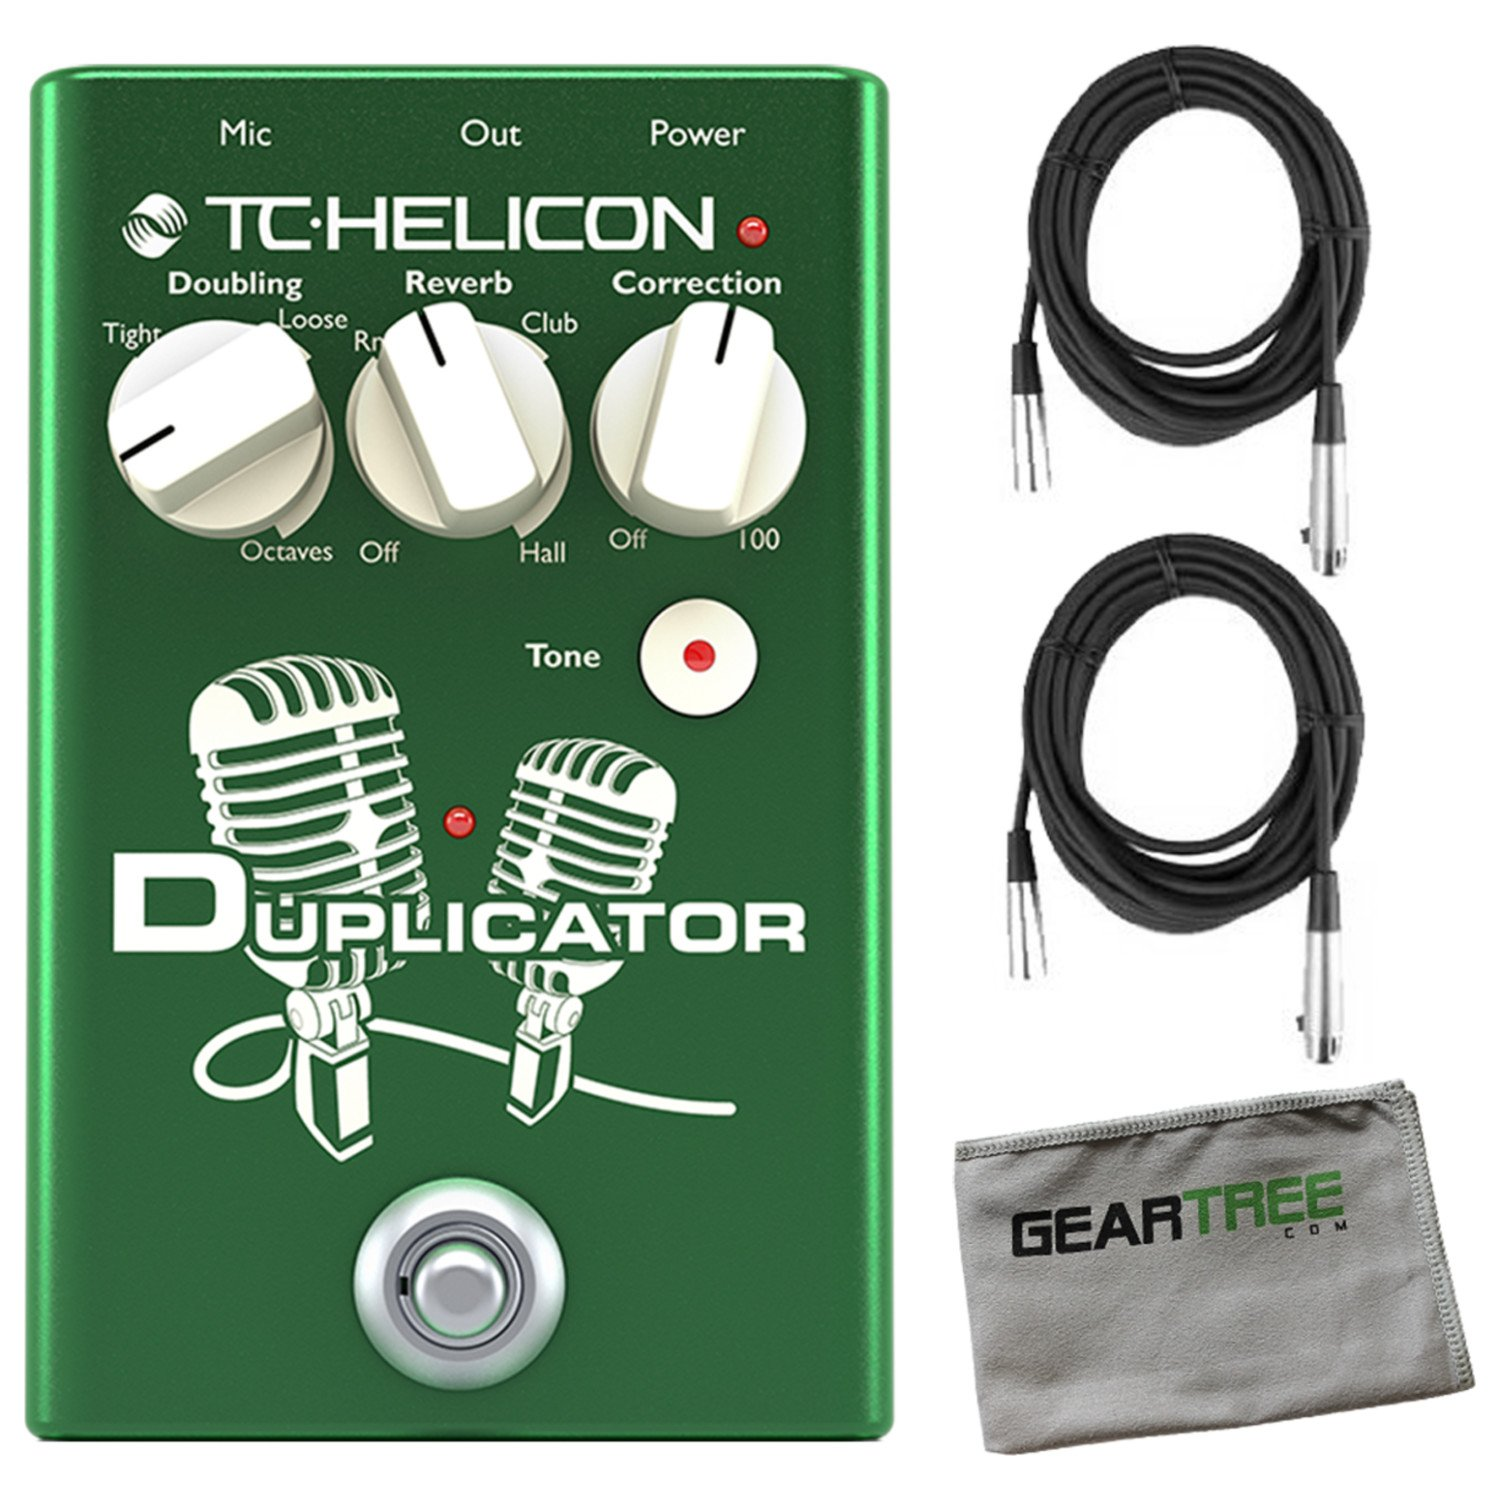 TC Helicon 996372001 TC Helicon DUPLICATOR Vocal Effects Pedal with XLR Cables and Zorro Sounds Cloth 4334435191